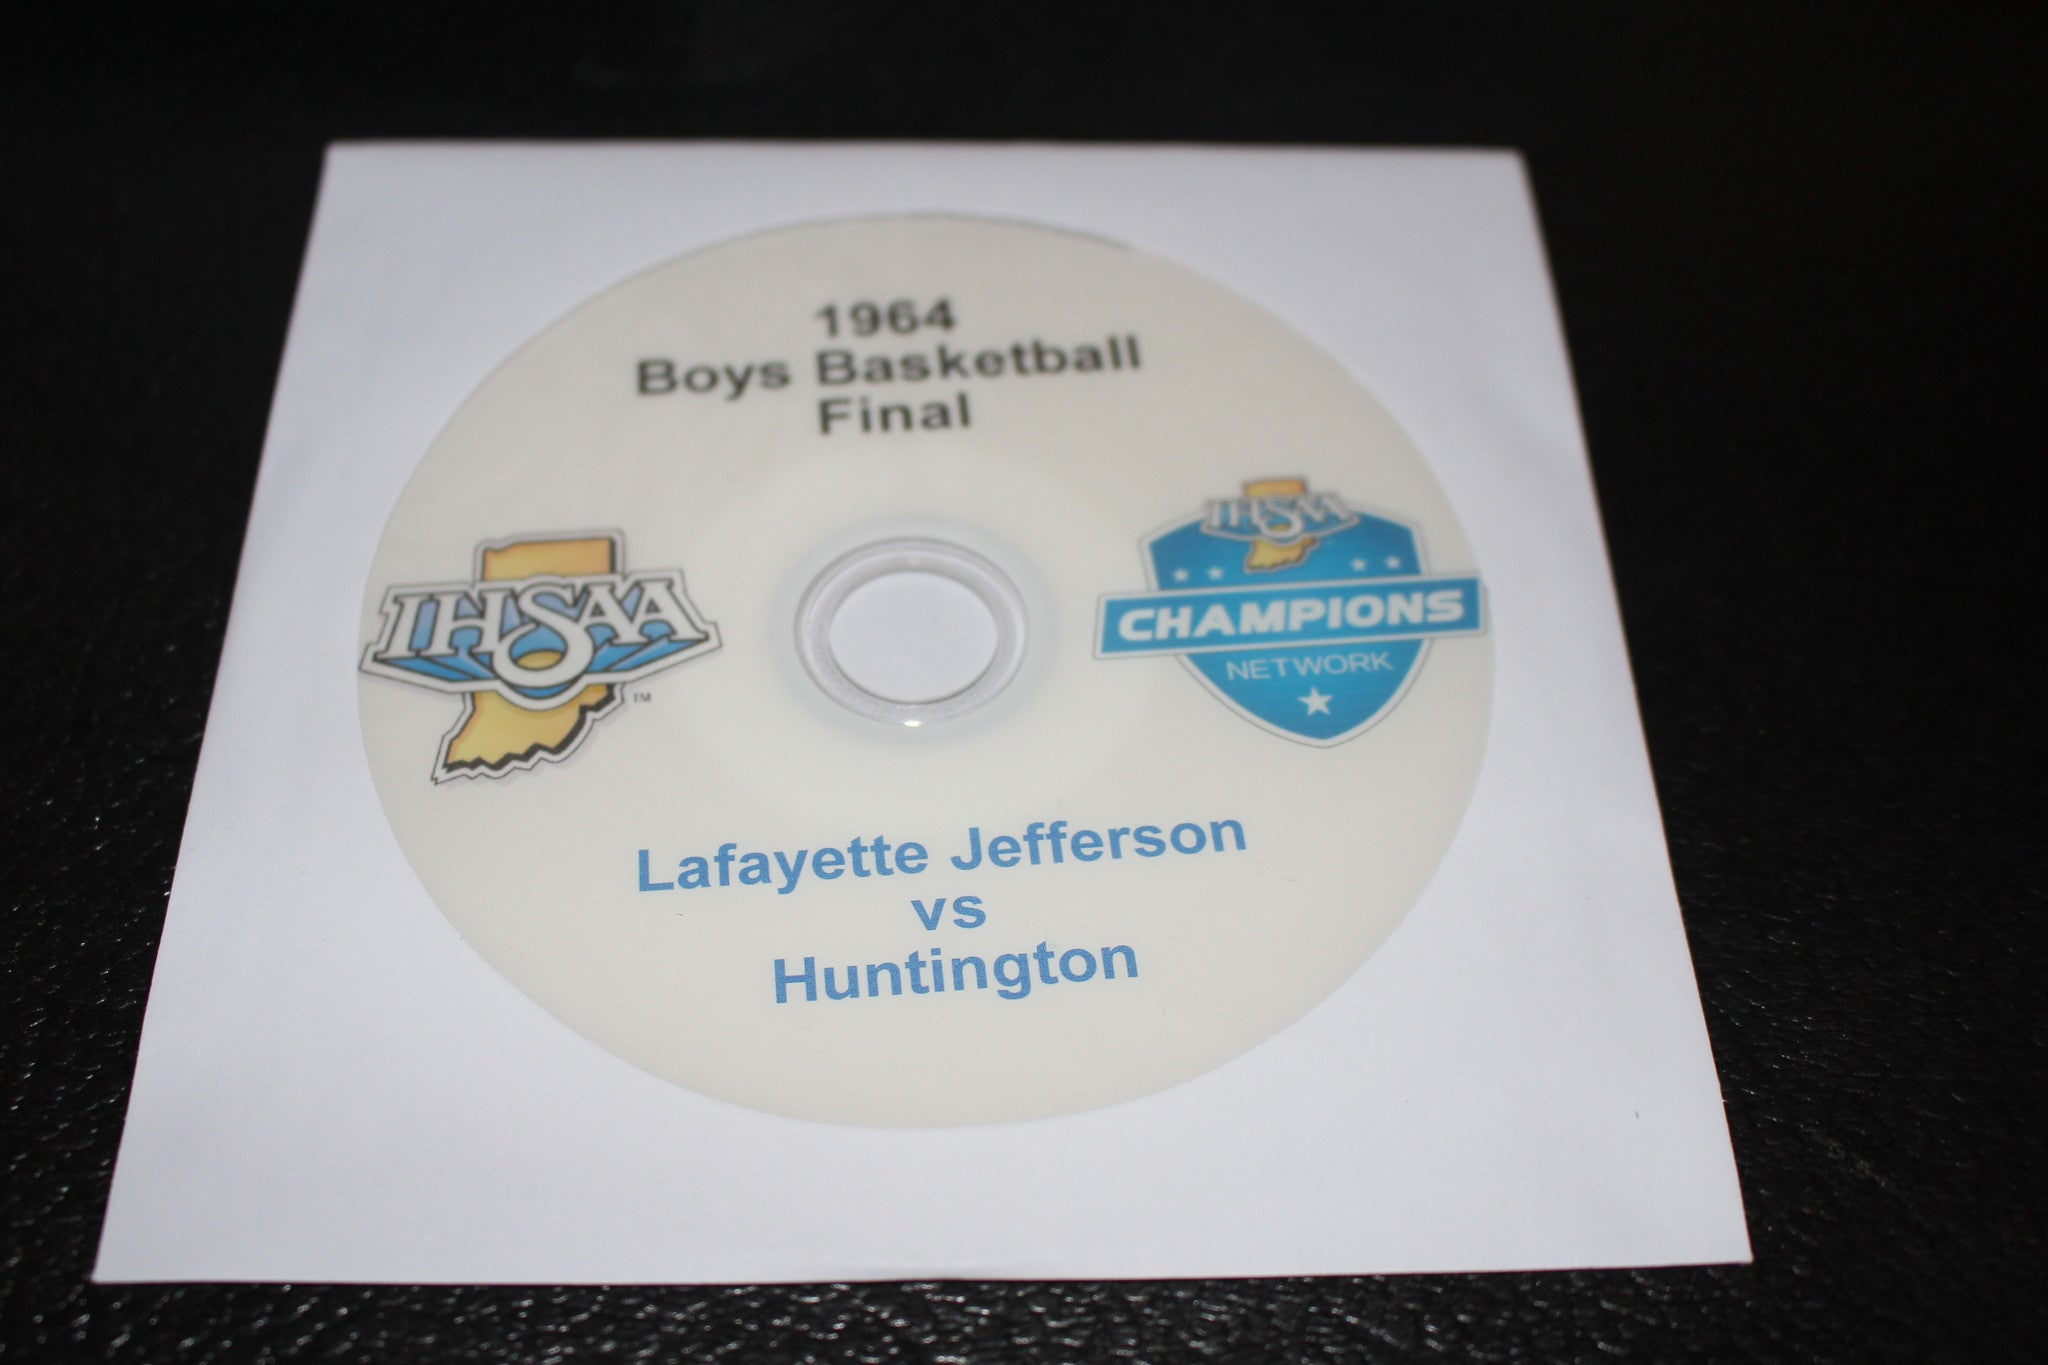 1964 Indiana High School Basketball Final DVD - Vintage Indy Sports